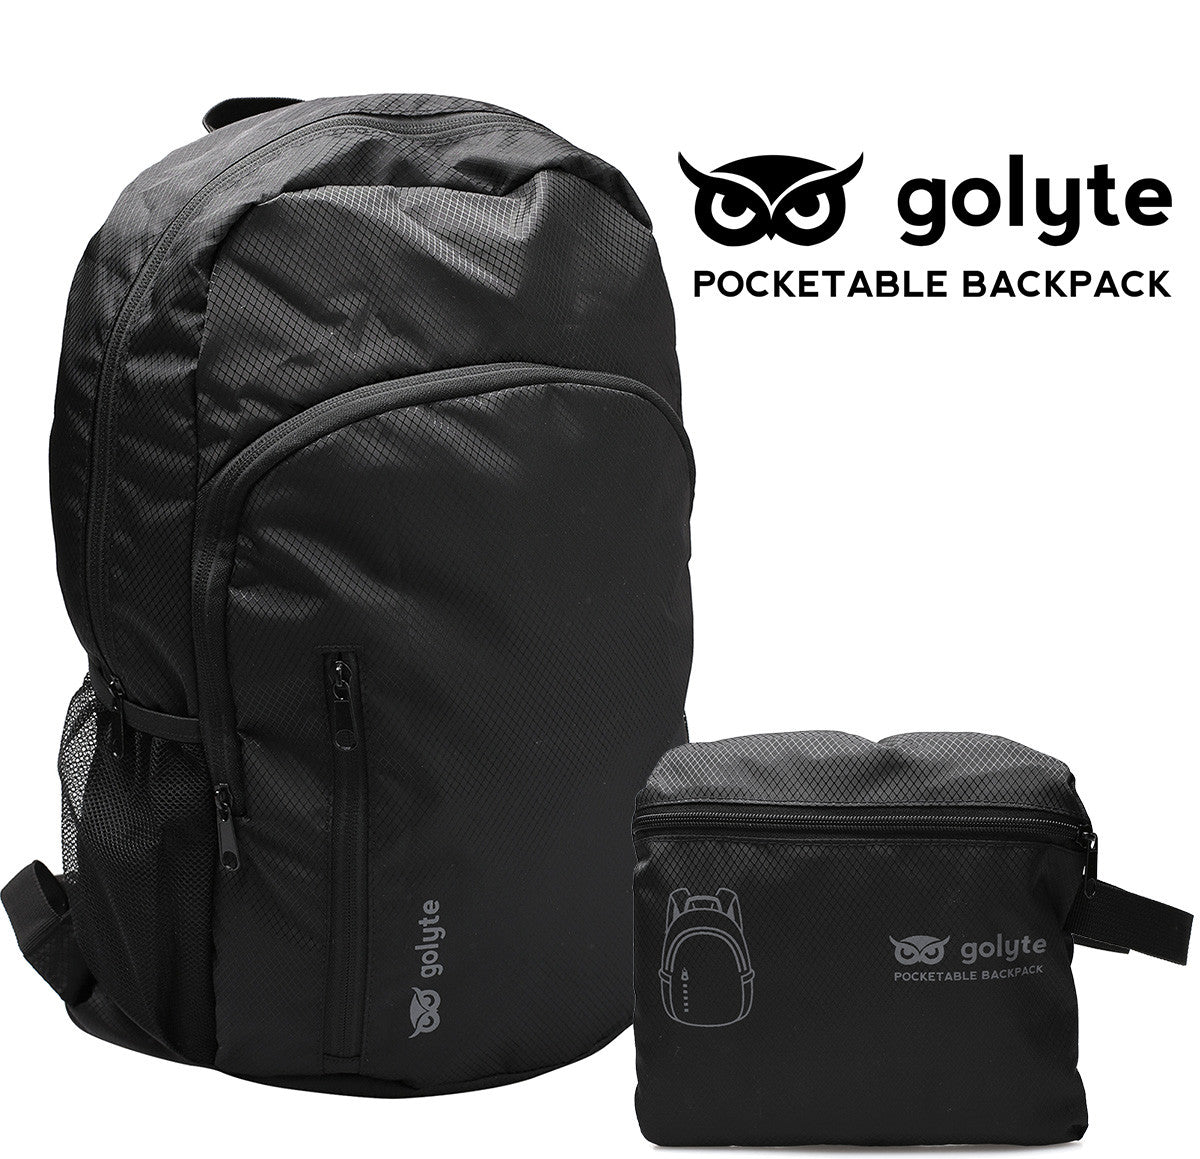 4c484bf67593 ... Golyte Lightweight Packable Travel Hiking Backpack Daypack 20L for Men  Women Adult Boy Girl Teen ...